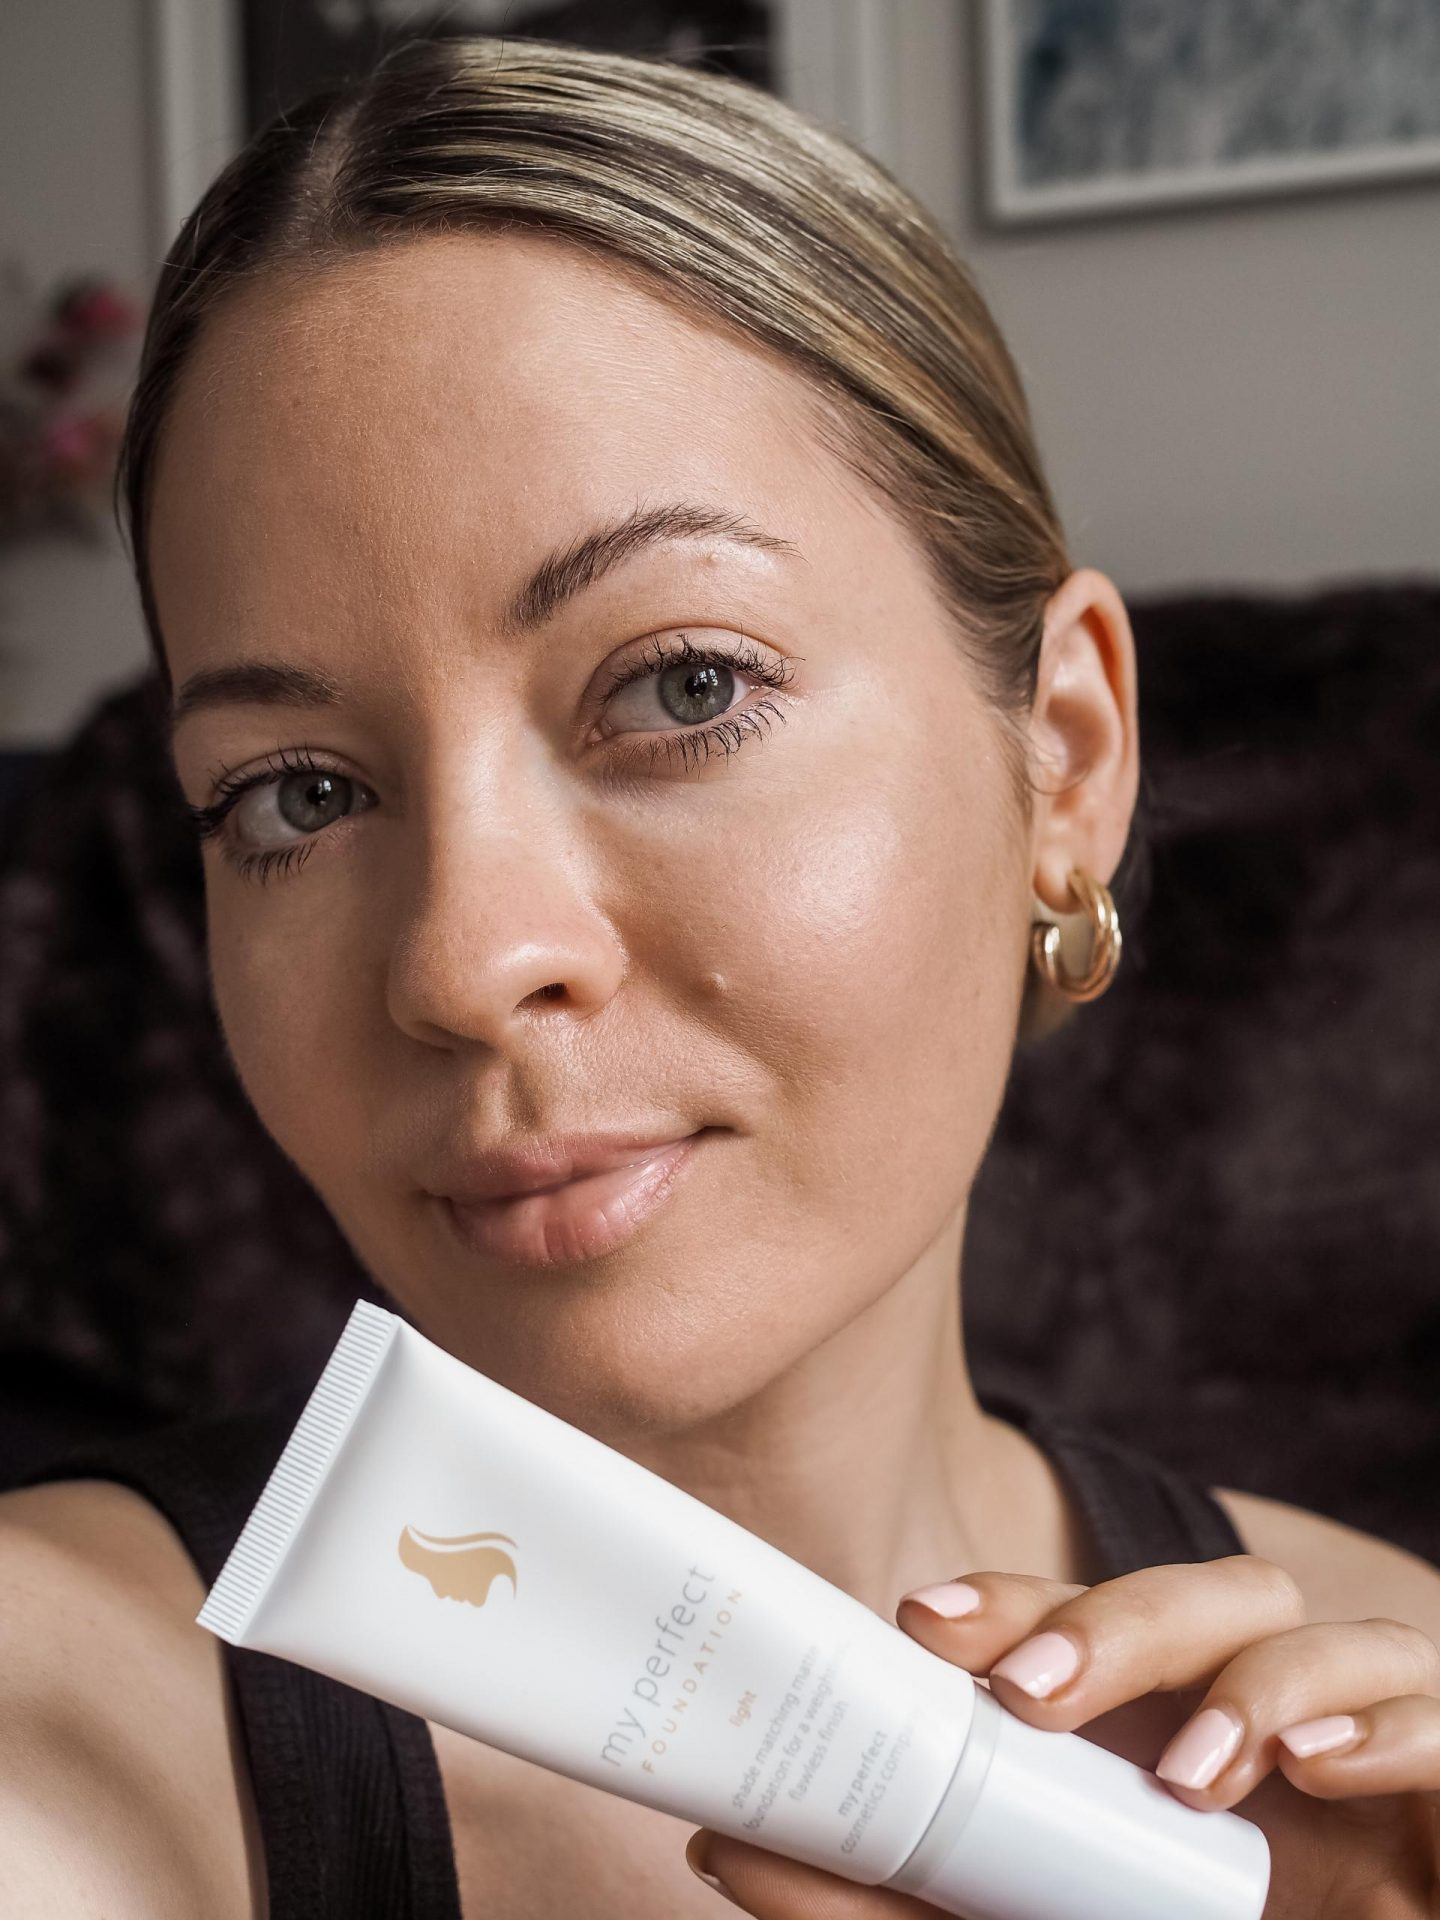 10-Minute Morning Beauty Routine